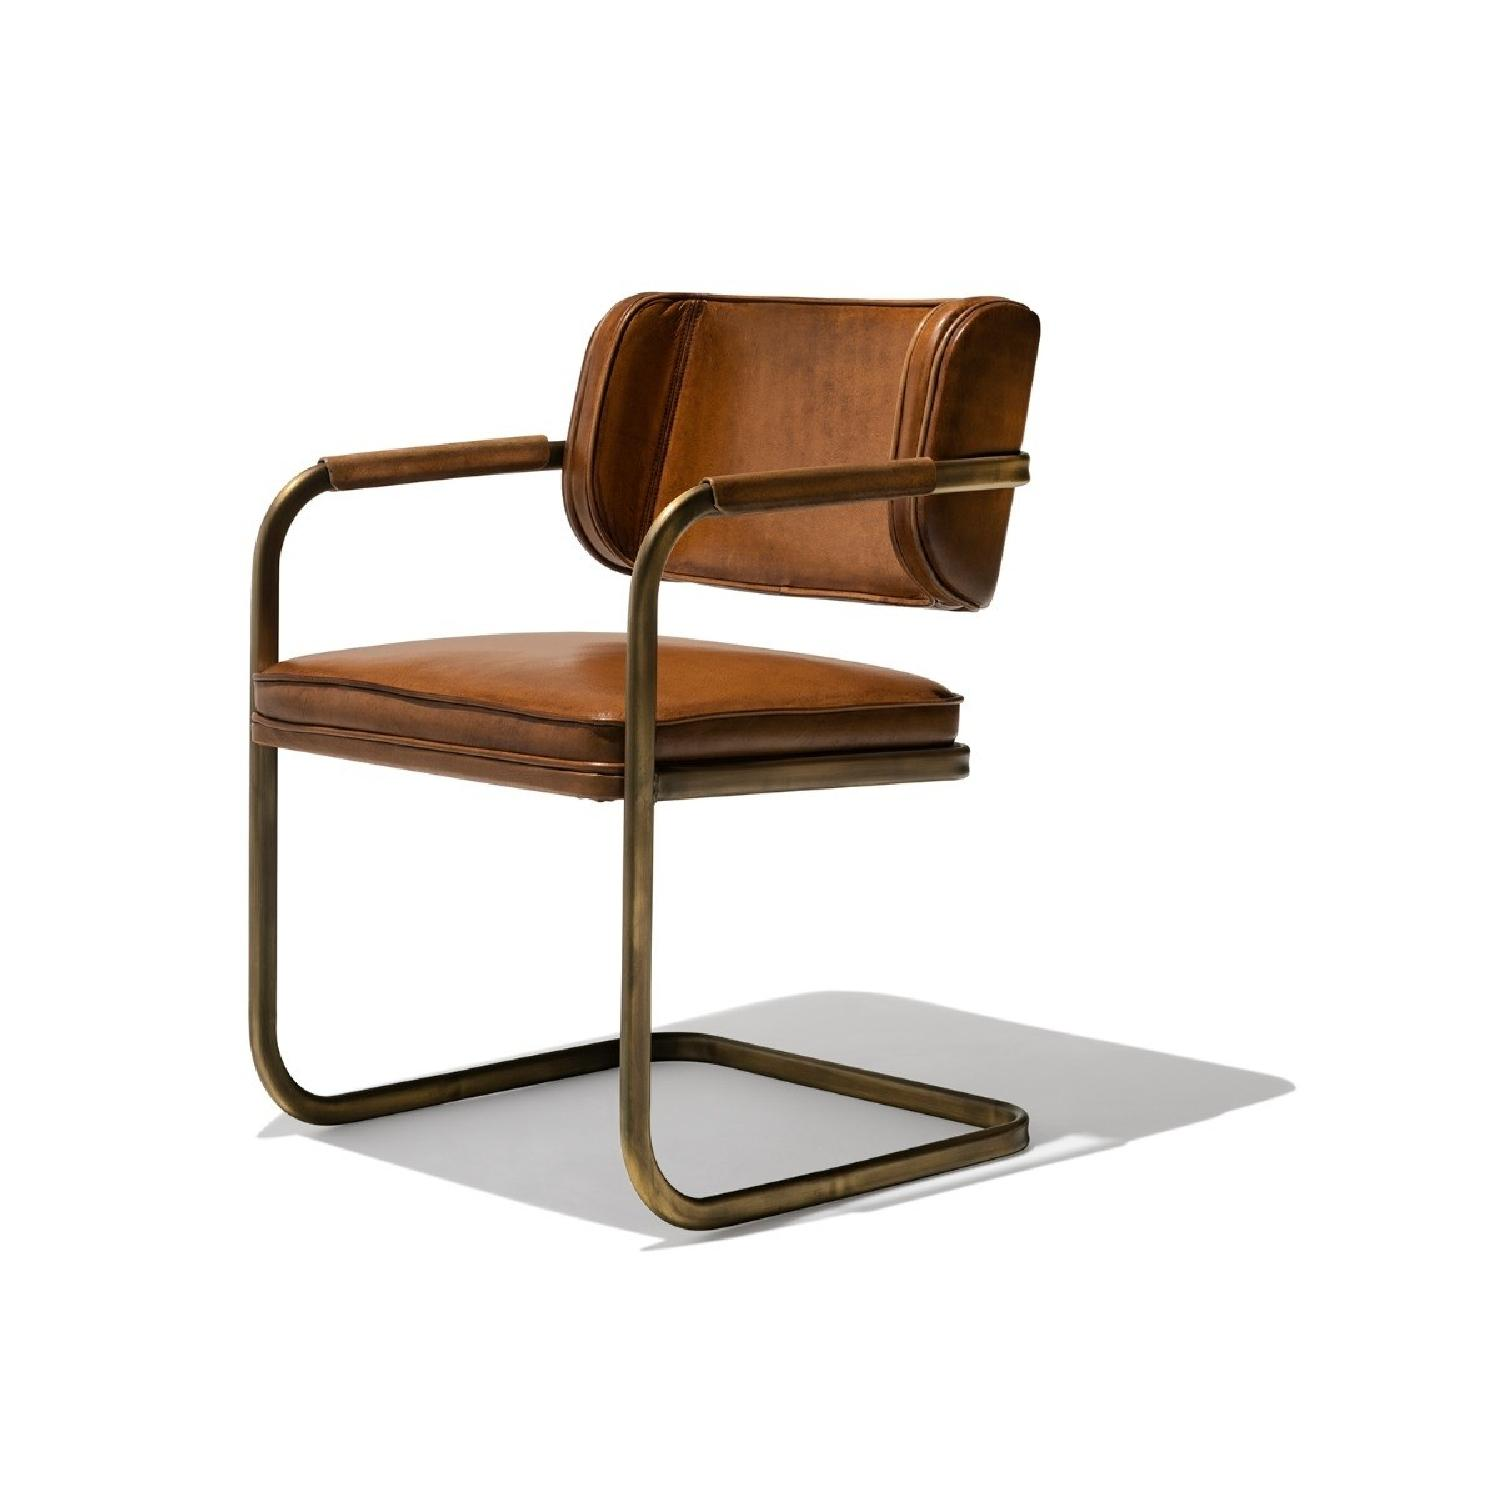 Industry West Jimmy Cooper Chair in Light Brown/Copper - image-0